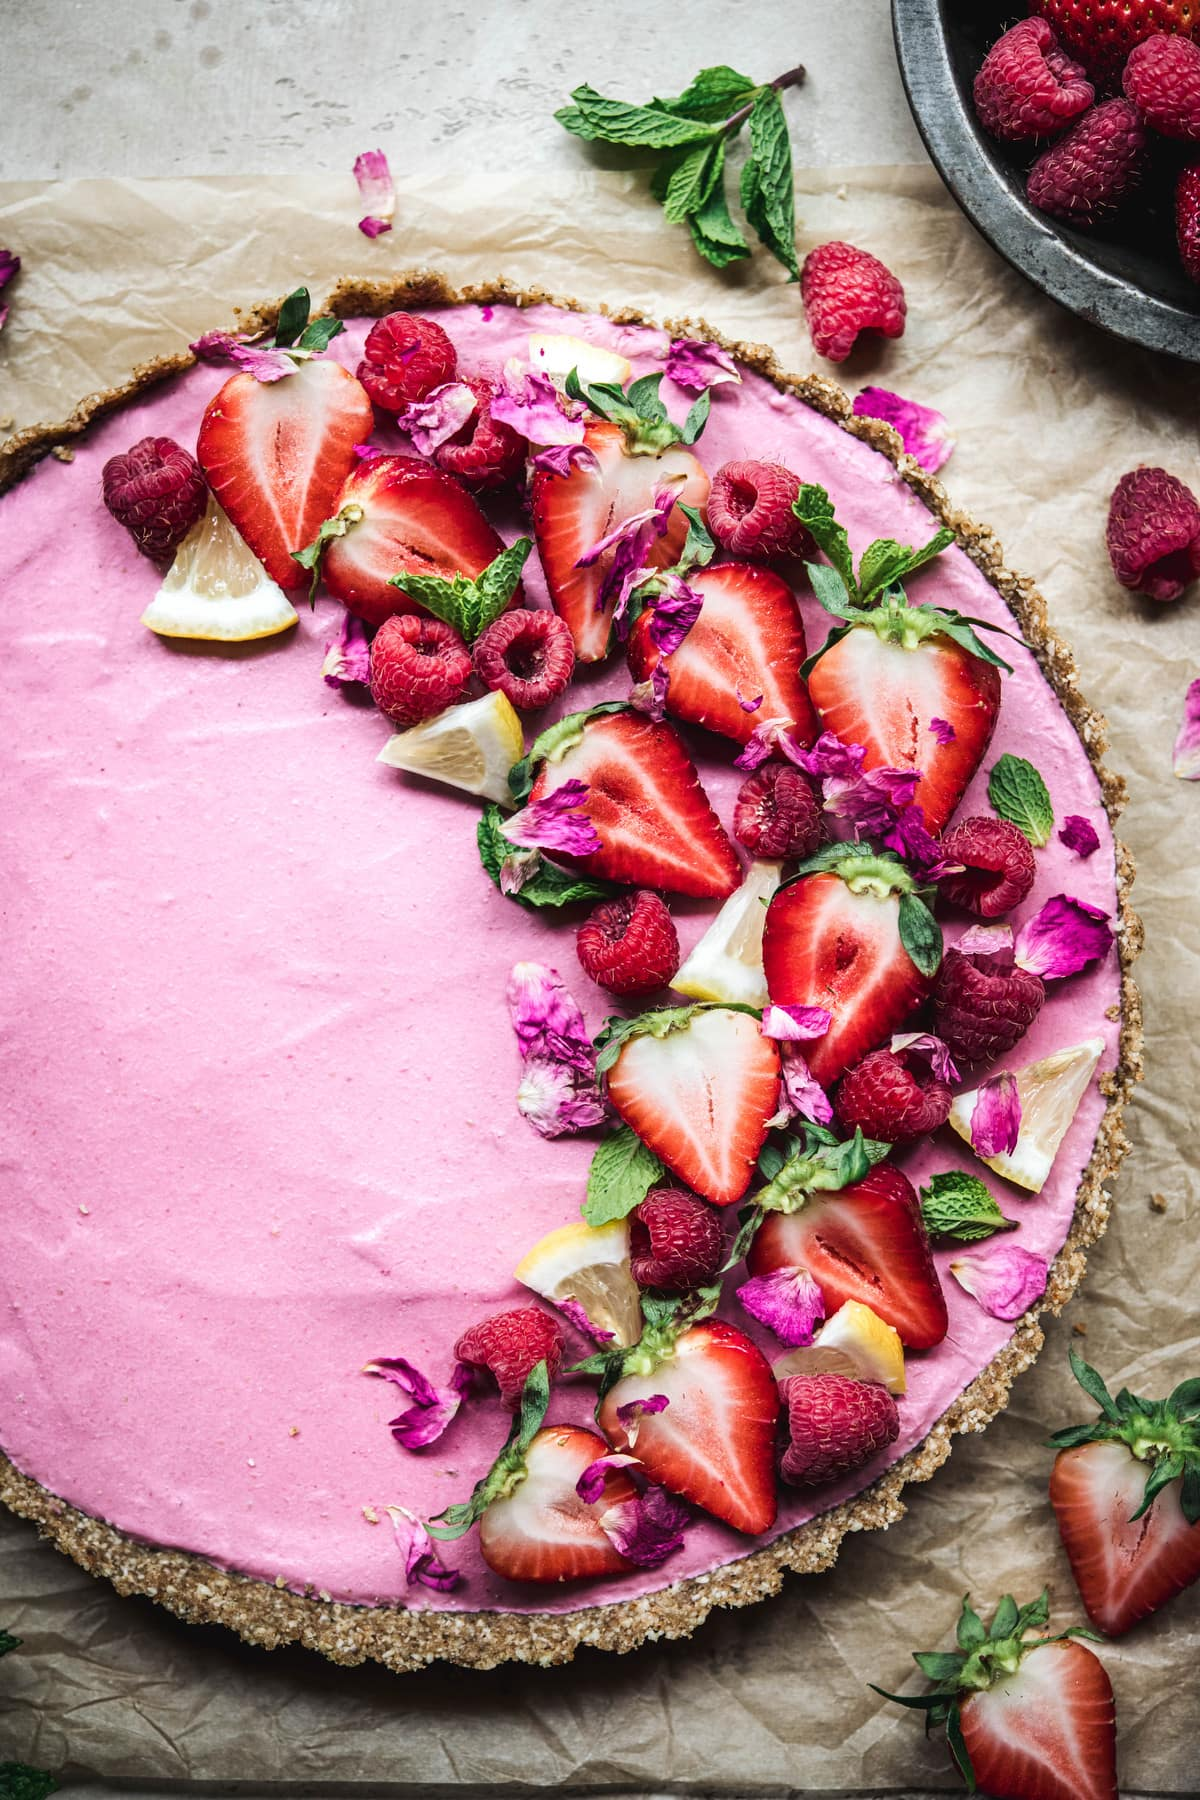 Overhead view of vegan strawberry mousse tart garnished with fresh berries on parchment paper